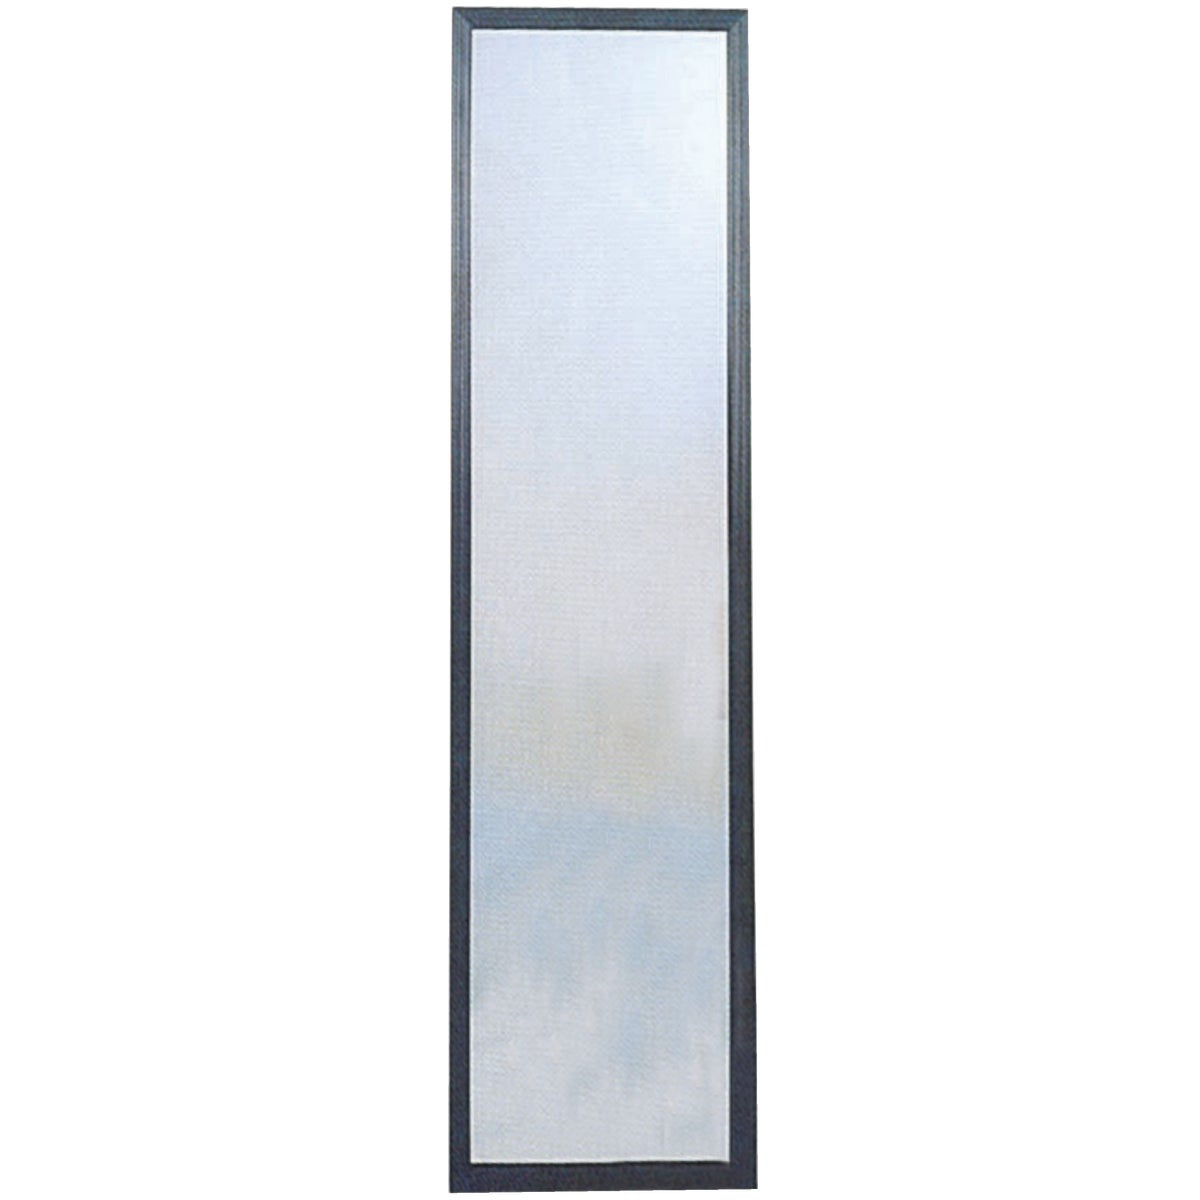 SUAVE BLK DOOR MIRROR